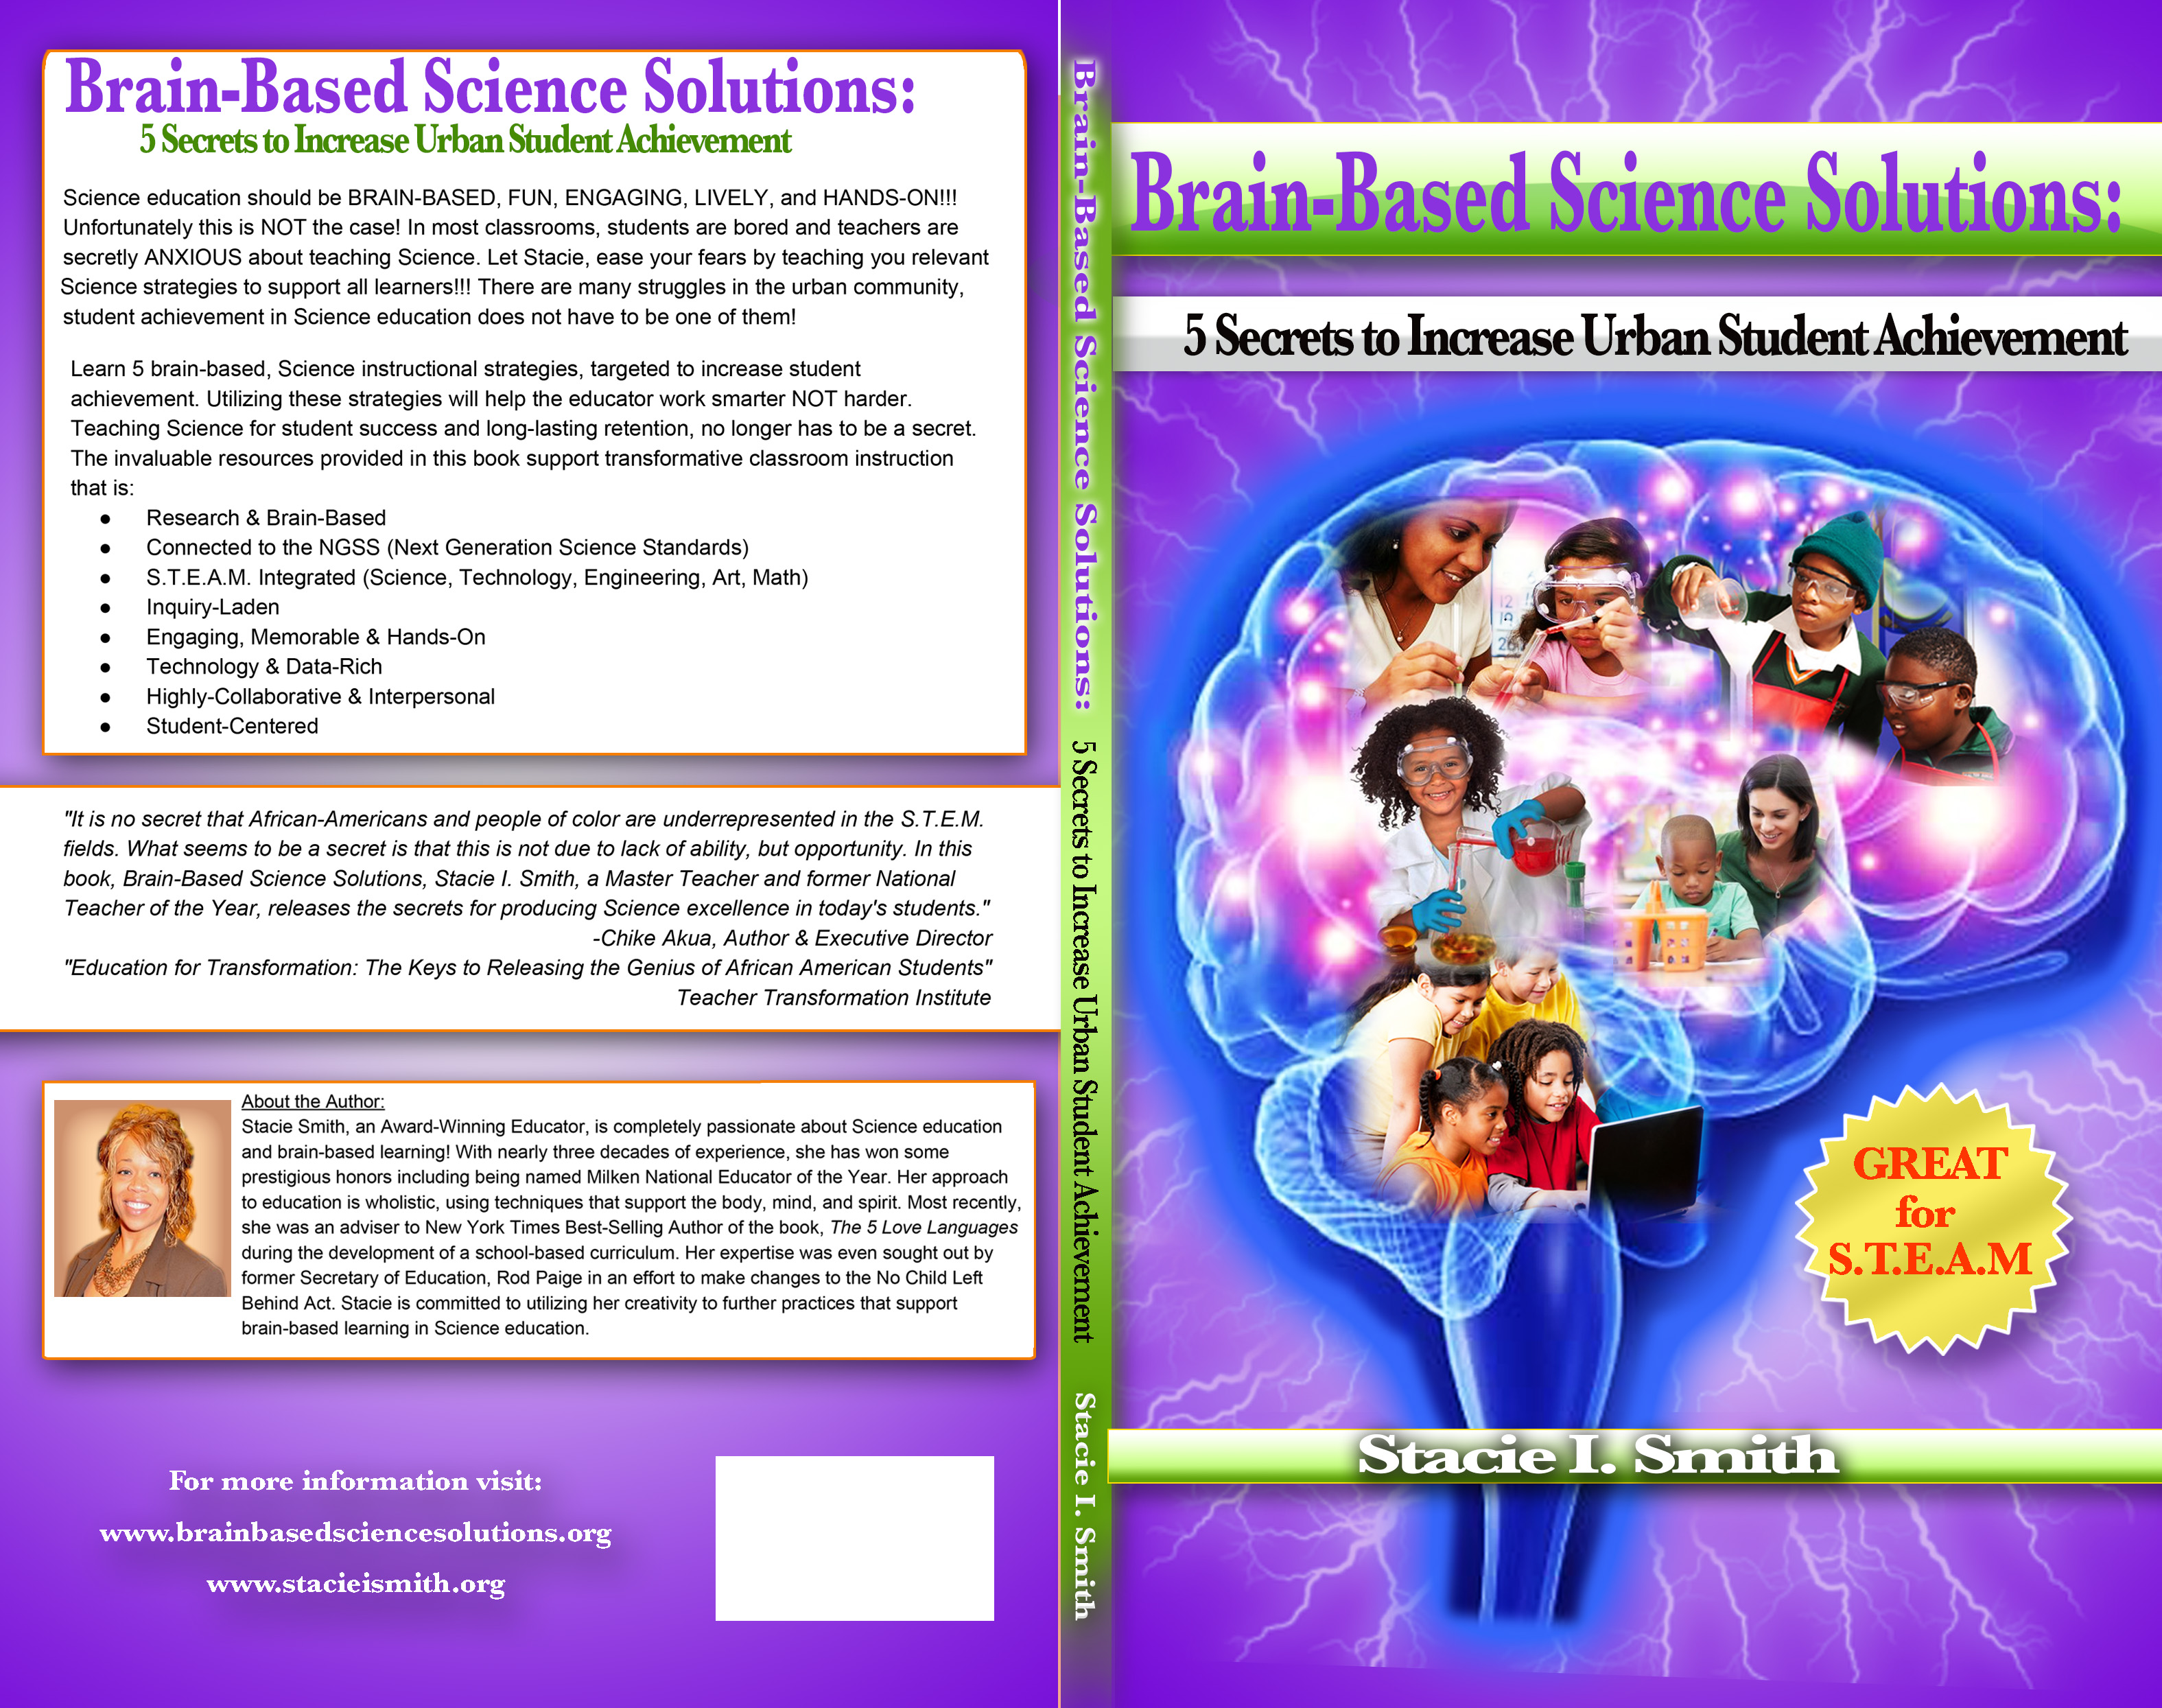 Brain-Based Science Solutions cover.jpg